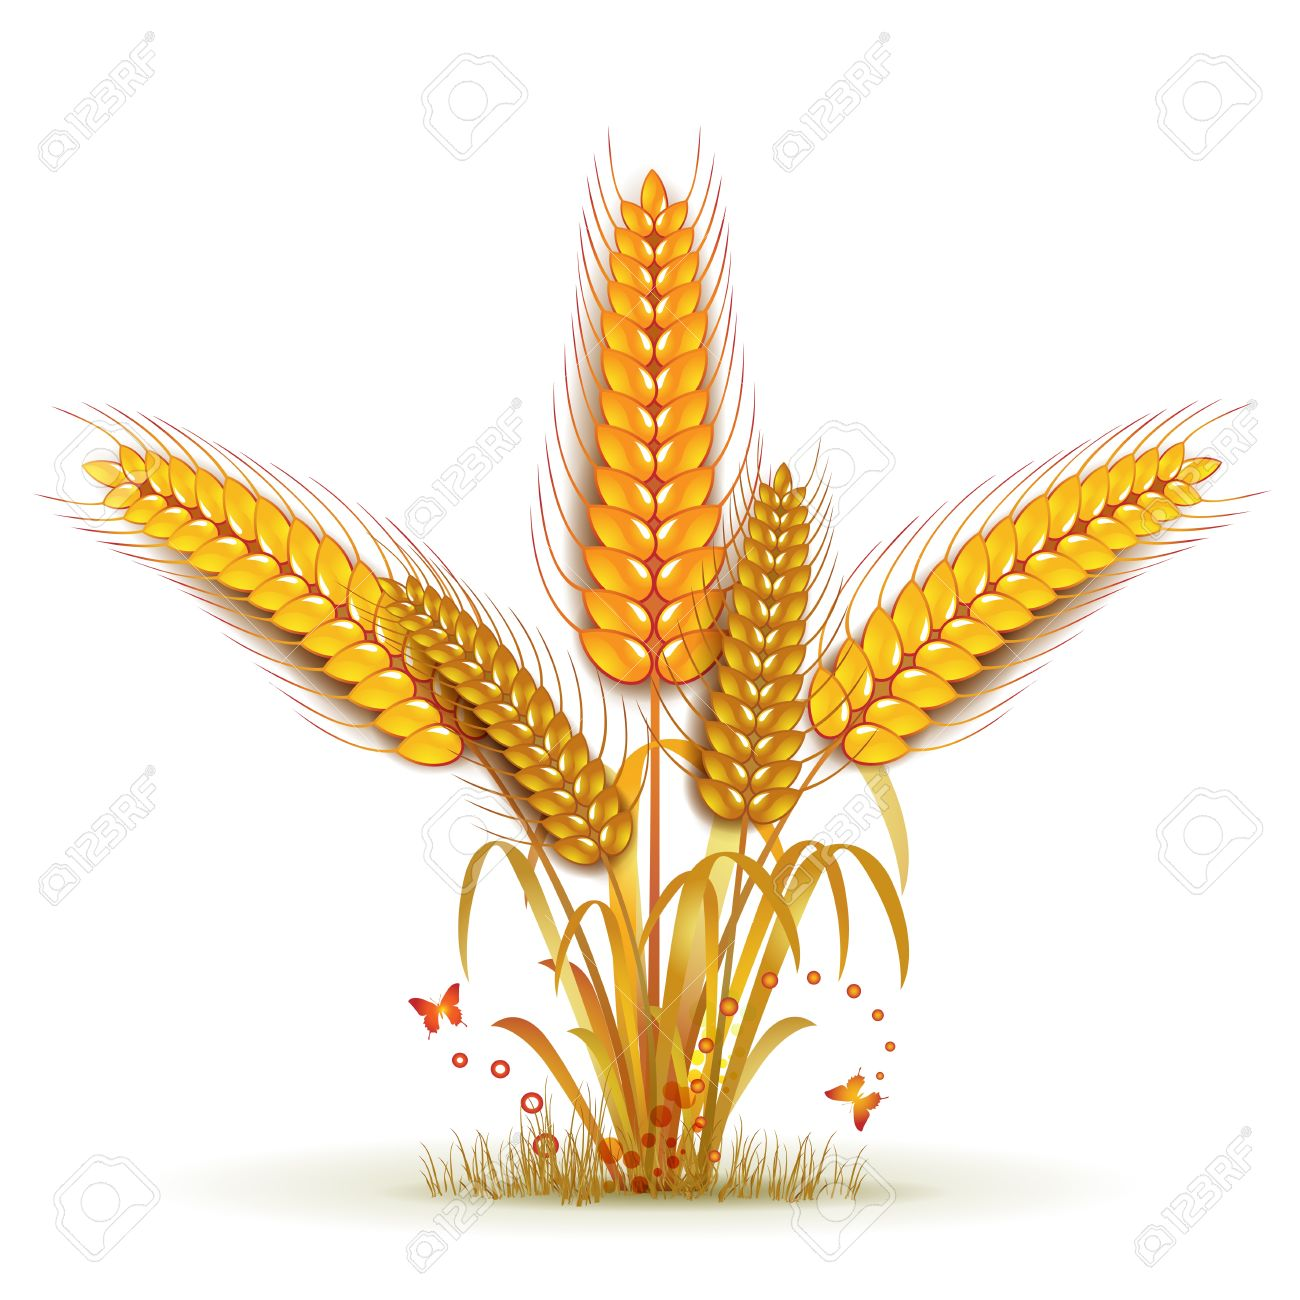 Wheat Sheaf Arrangement Royalty Free Cliparts, Vectors, And Stock.